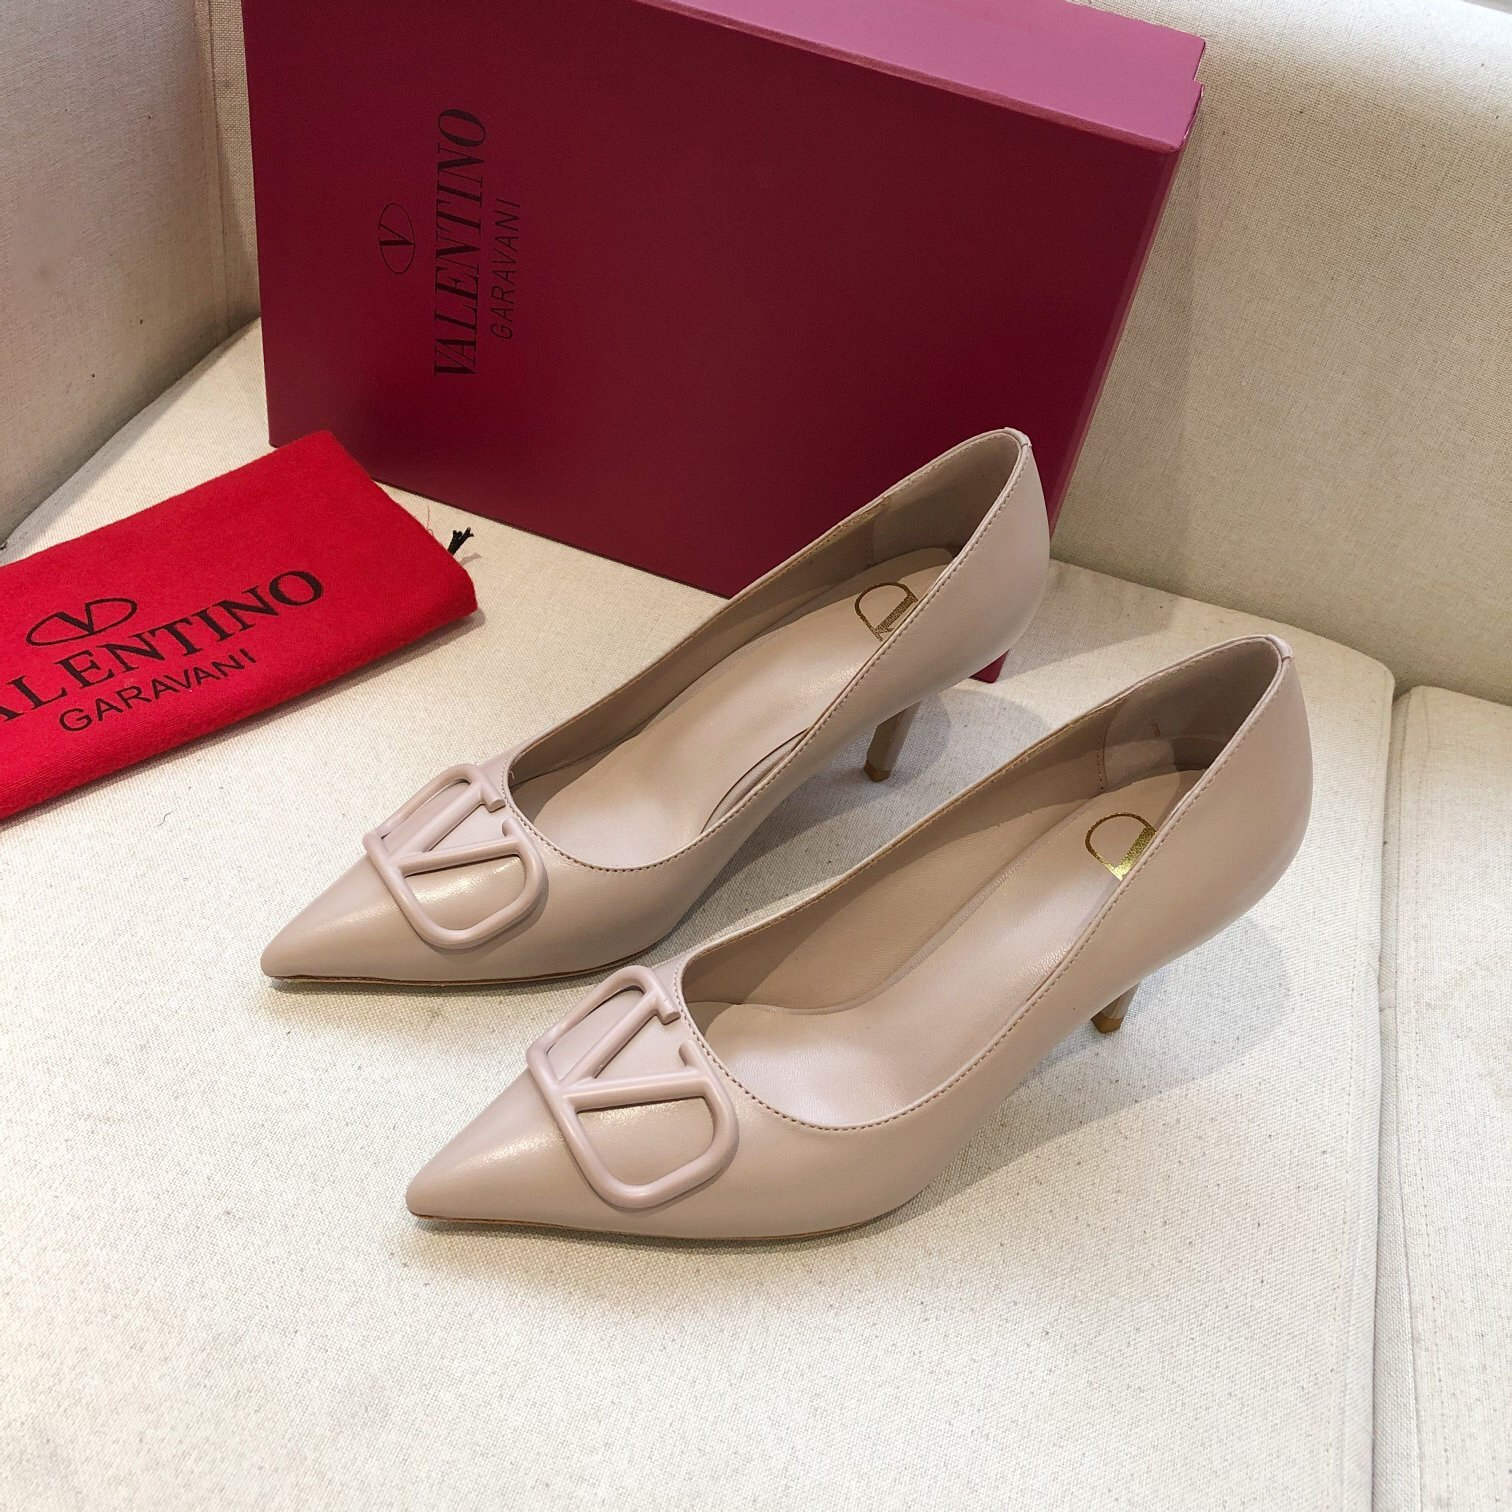 Image of Valentino  Big V-button shoes  Heel height 7 cm